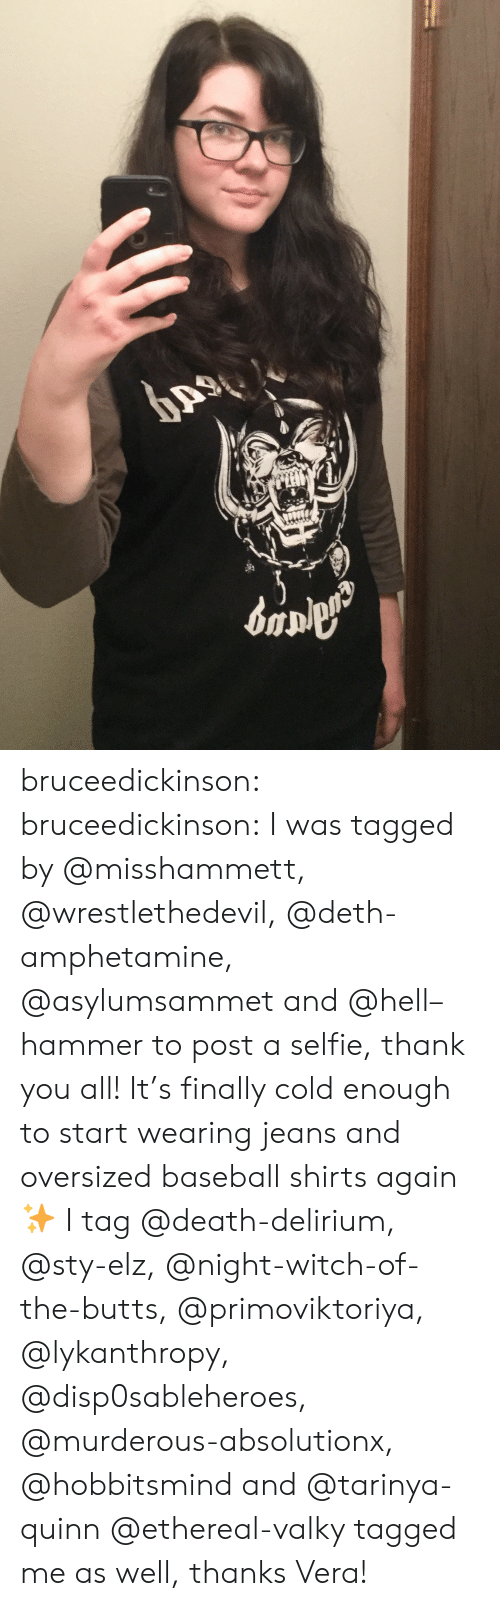 murderous: bruceedickinson:  bruceedickinson:  I was tagged by @misshammett, @wrestlethedevil, @deth-amphetamine, @asylumsammet and @hell–hammer to post a selfie, thank you all! It's finally cold enough to start wearing jeans and oversized baseball shirts again ✨  I tag @death-delirium, @sty-elz, @night-witch-of-the-butts, @primoviktoriya, @lykanthropy, @disp0sableheroes, @murderous-absolutionx, @hobbitsmind and @tarinya-quinn  @ethereal-valky tagged me as well, thanks Vera!